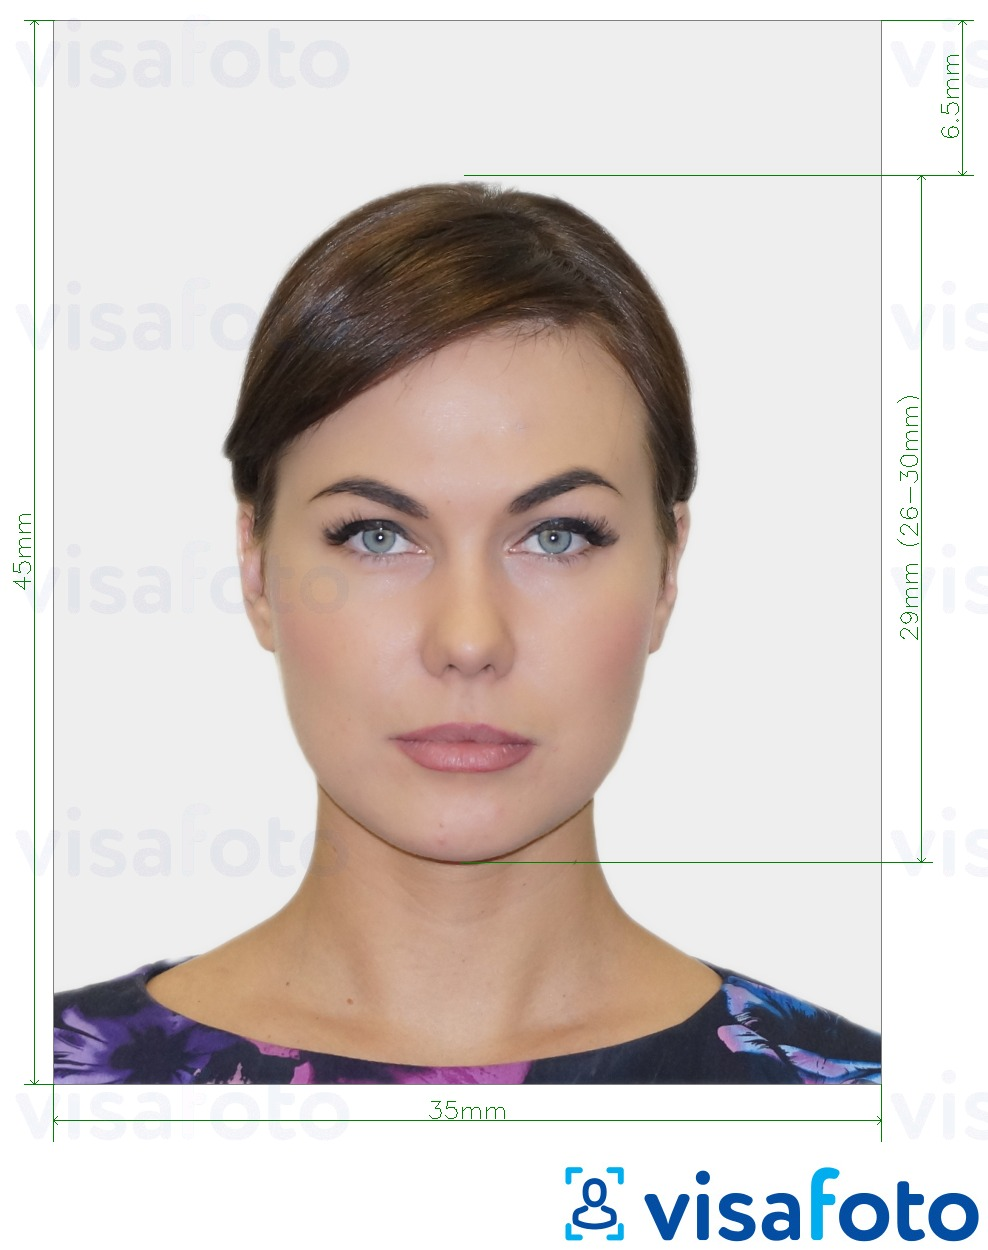 Example of photo for Dutch ID card 35x45 mm (3.5x4.5 cm) with exact size specification